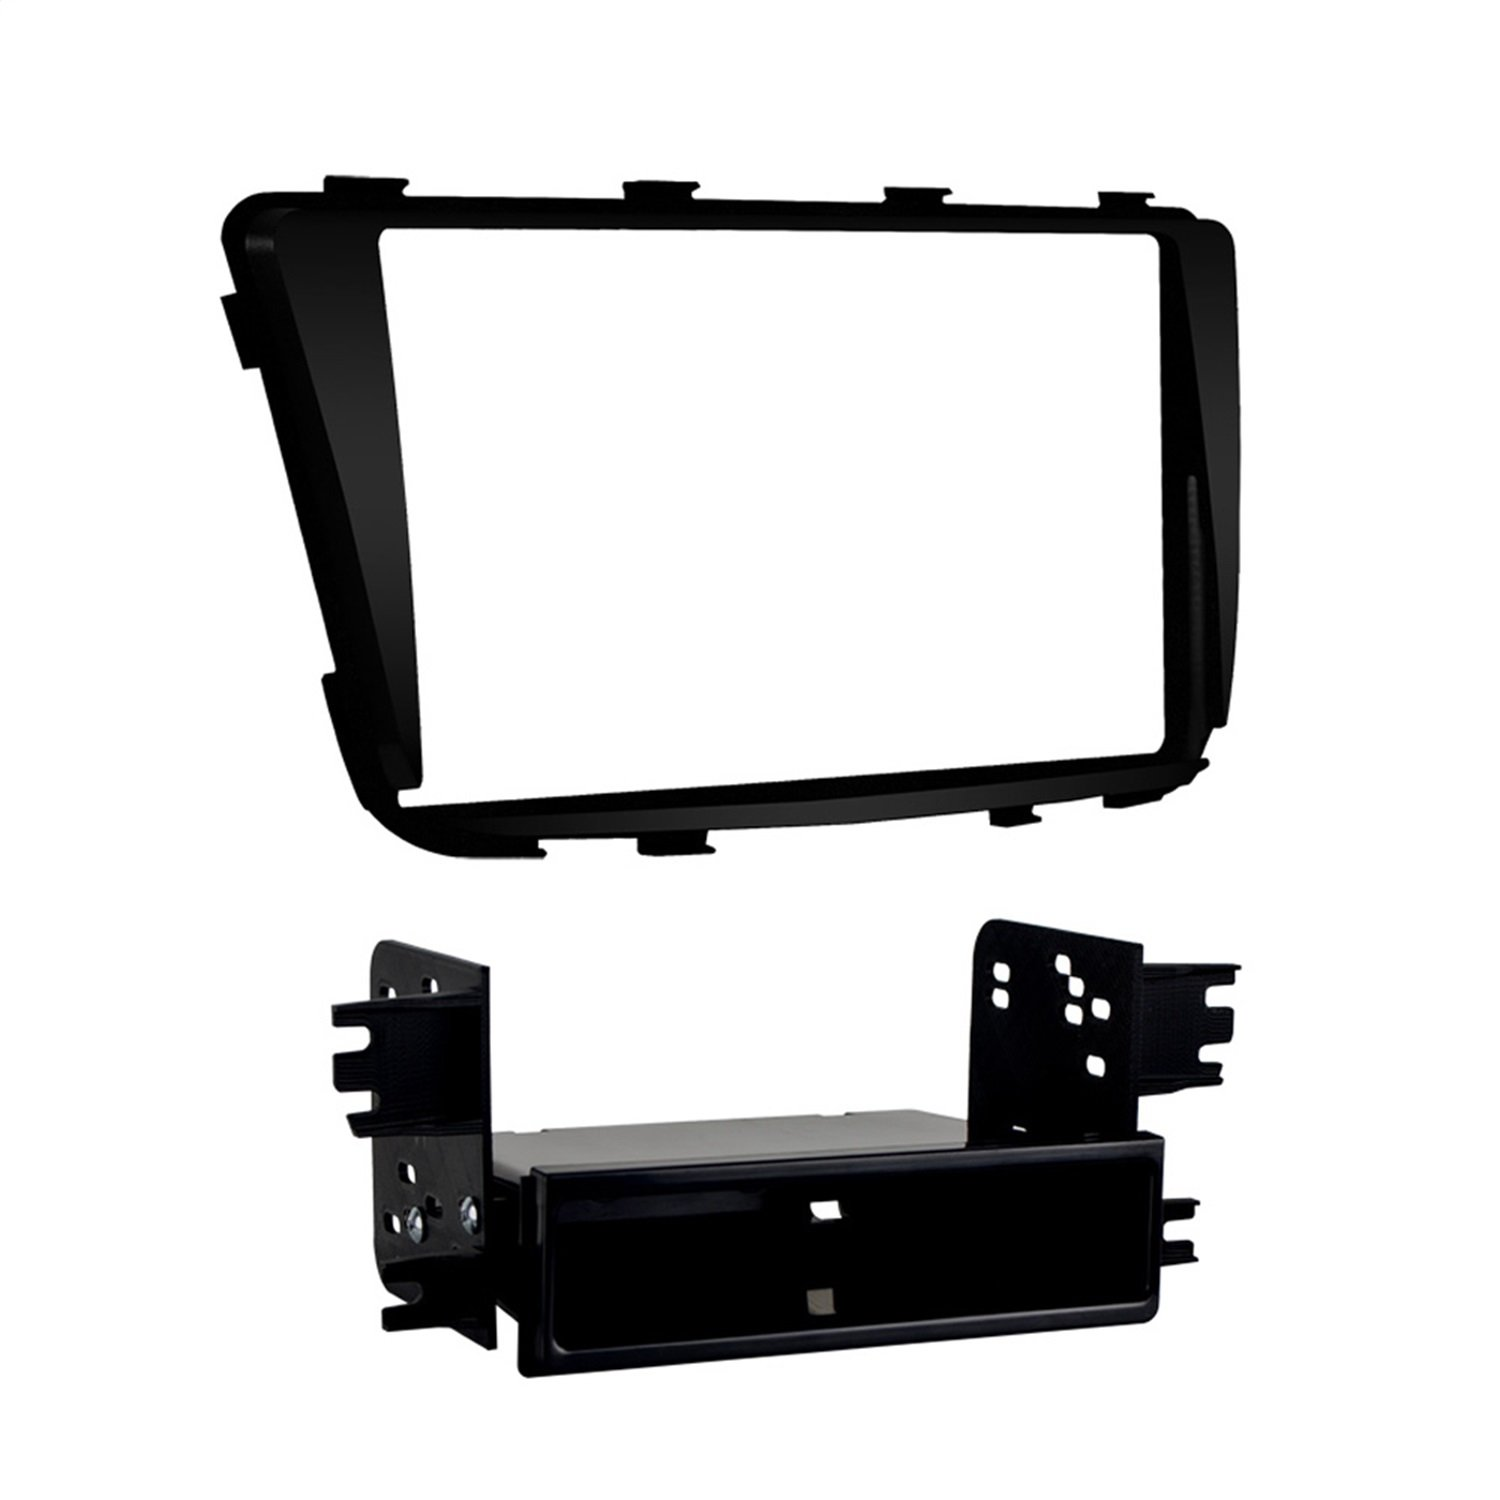 metra hyundai accent dash single double din tablette fast install kit car electronics folding garden furniture black piece table set pier imports dining home goods end tables